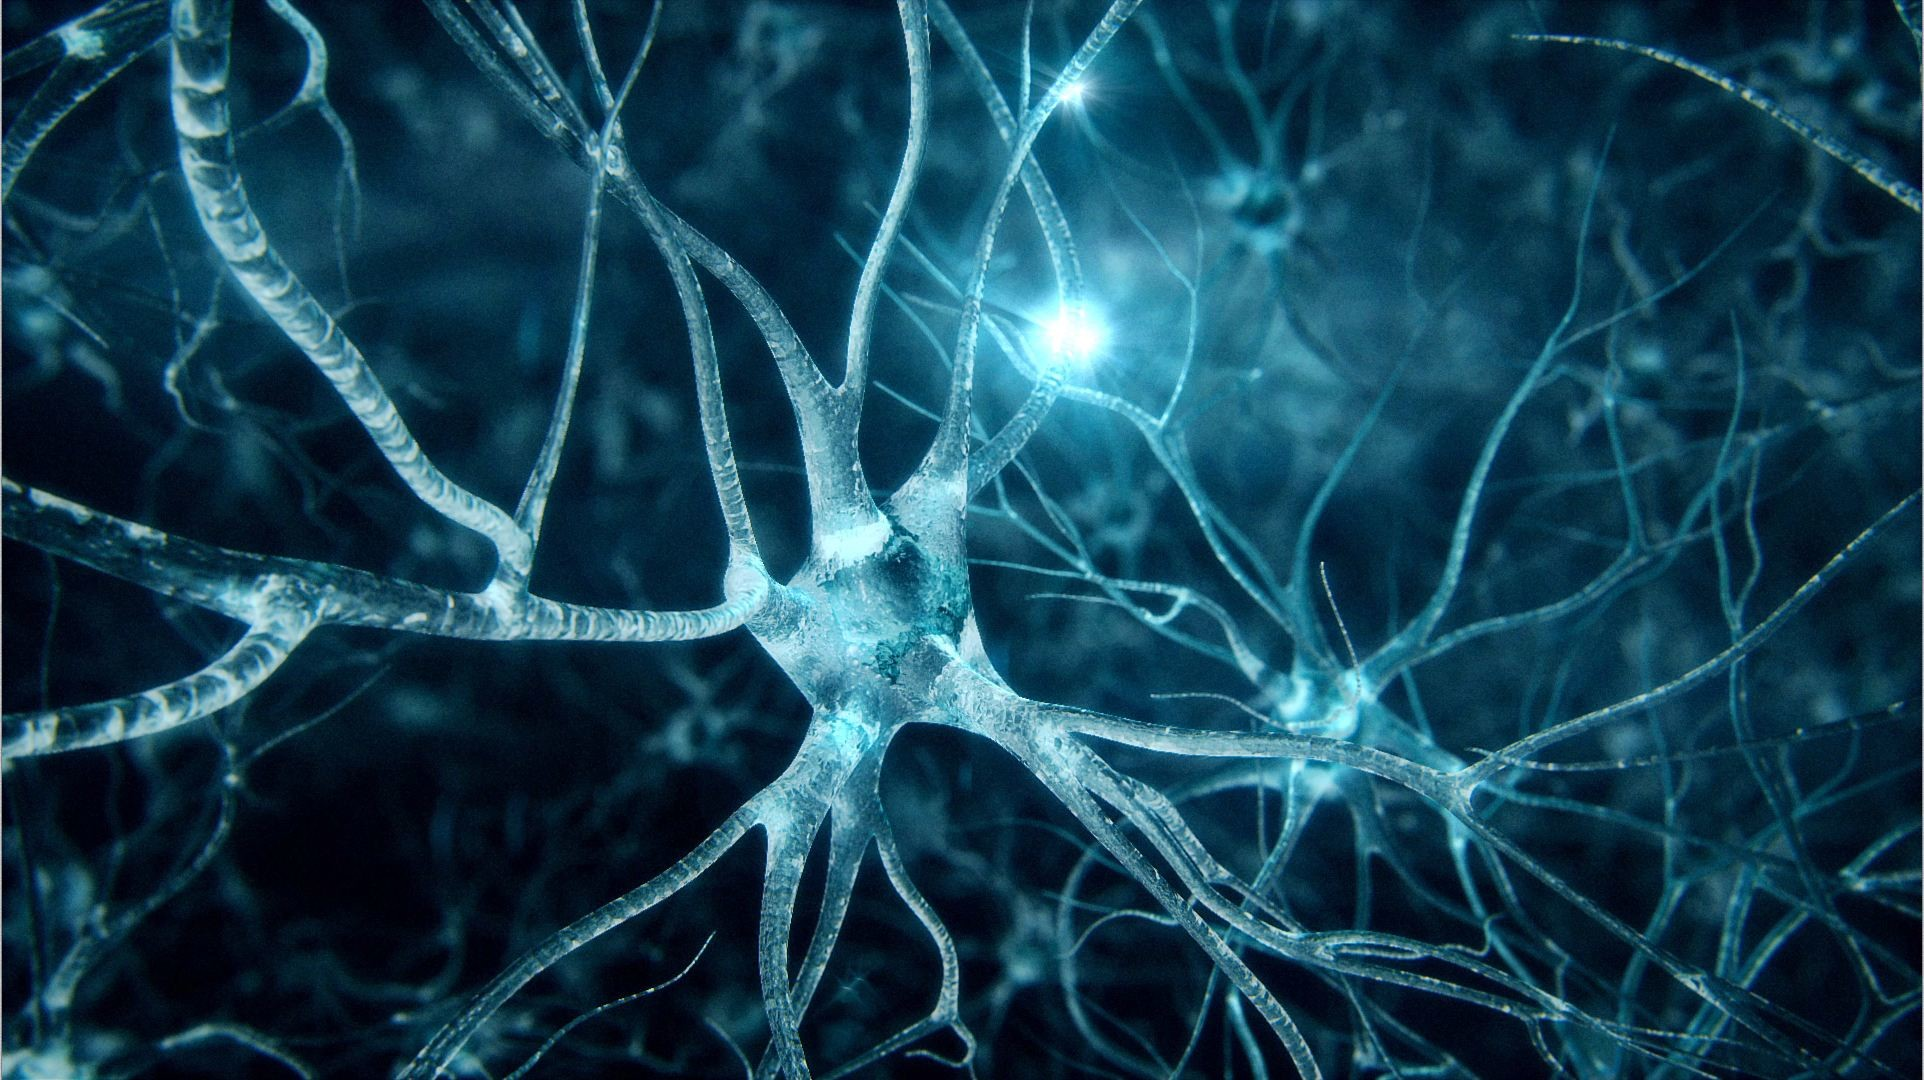 neuron wallpapers 52 images